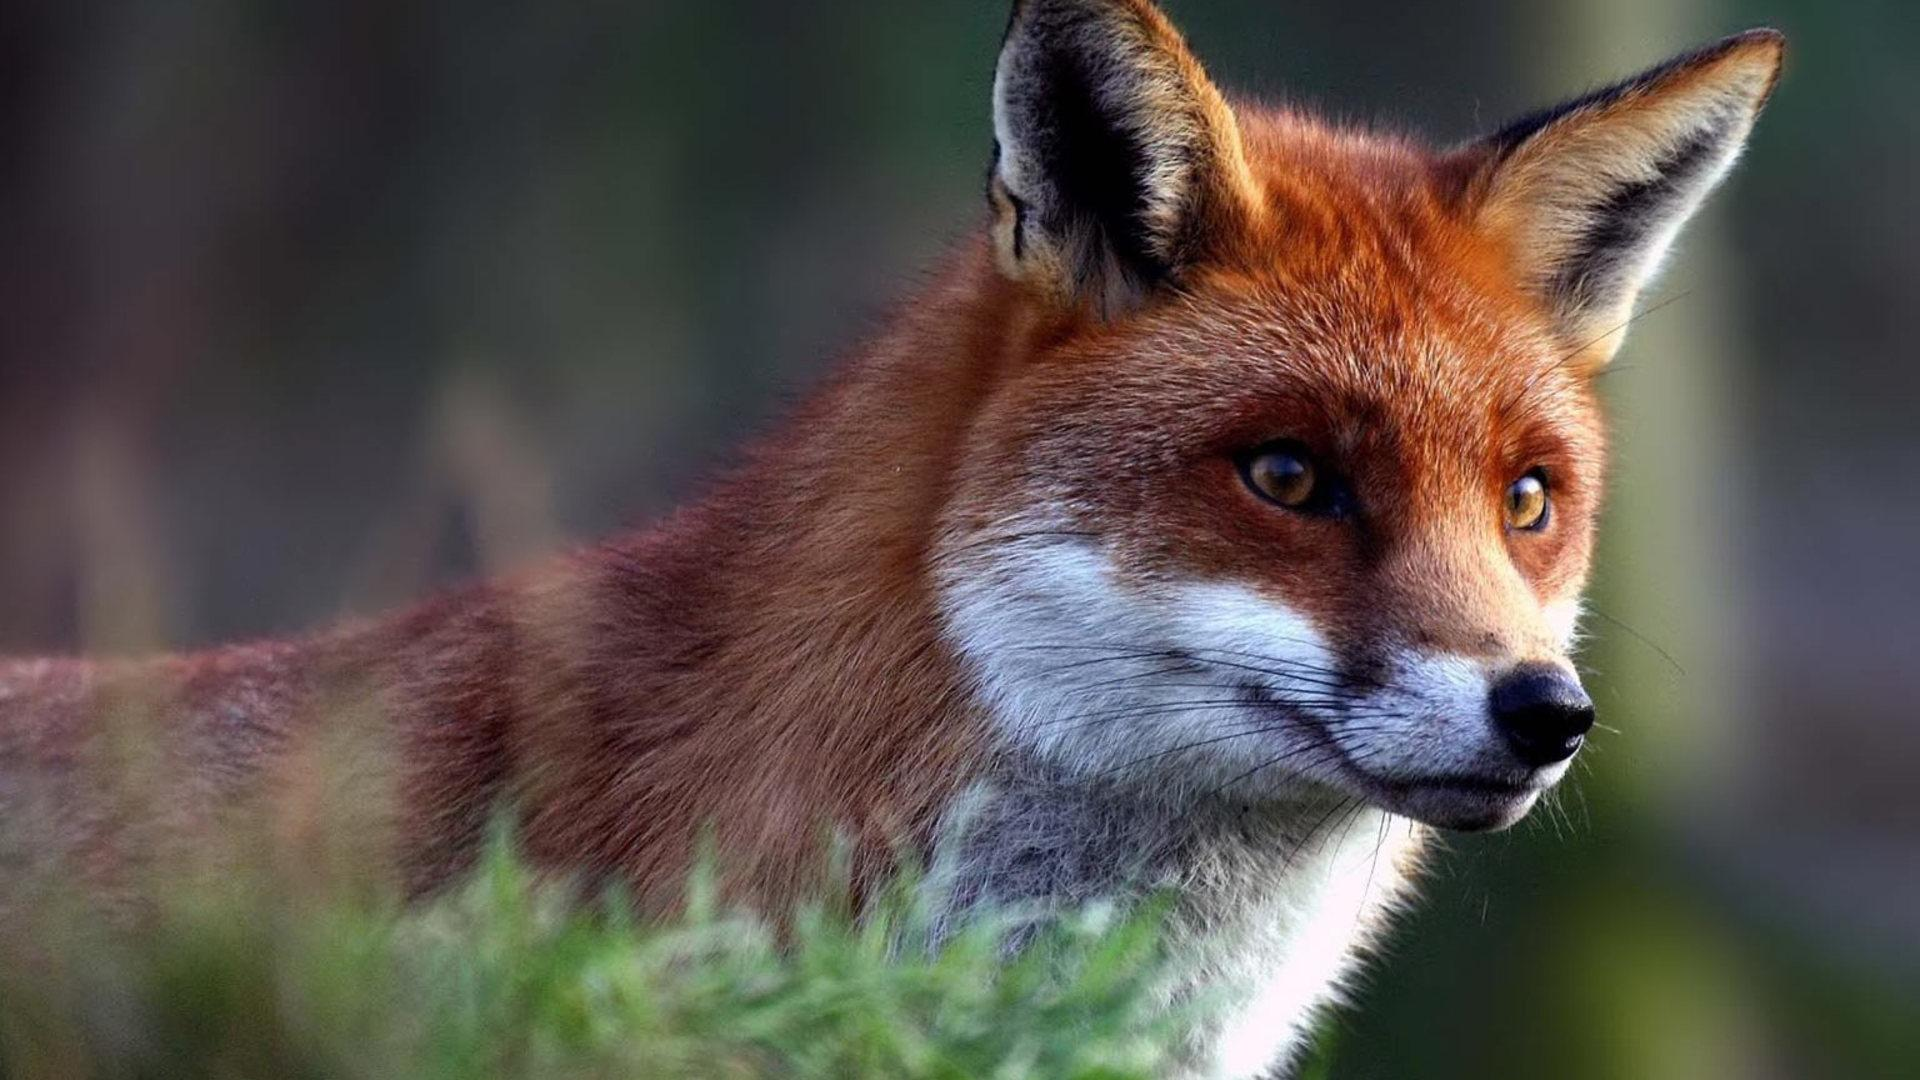 red fox hd wallpapers - photo #20